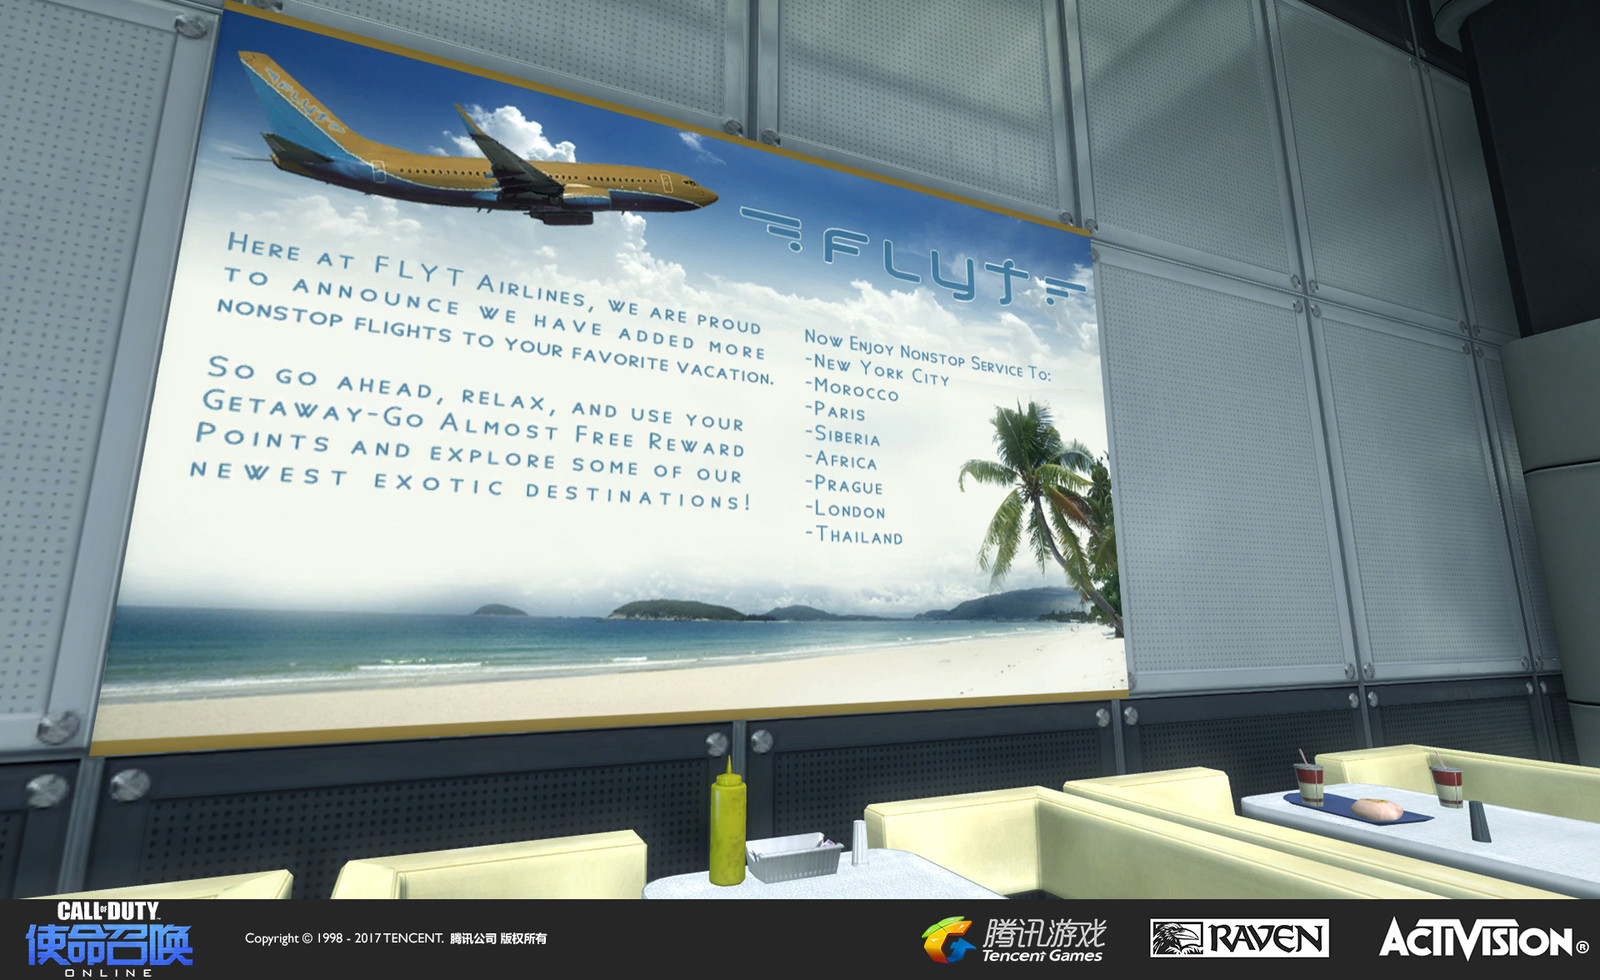 Terminal: A re-creation of the muliplayer map in Modern Warfare 2. I re-themed the ads with a new fictional airline with logo and design work.